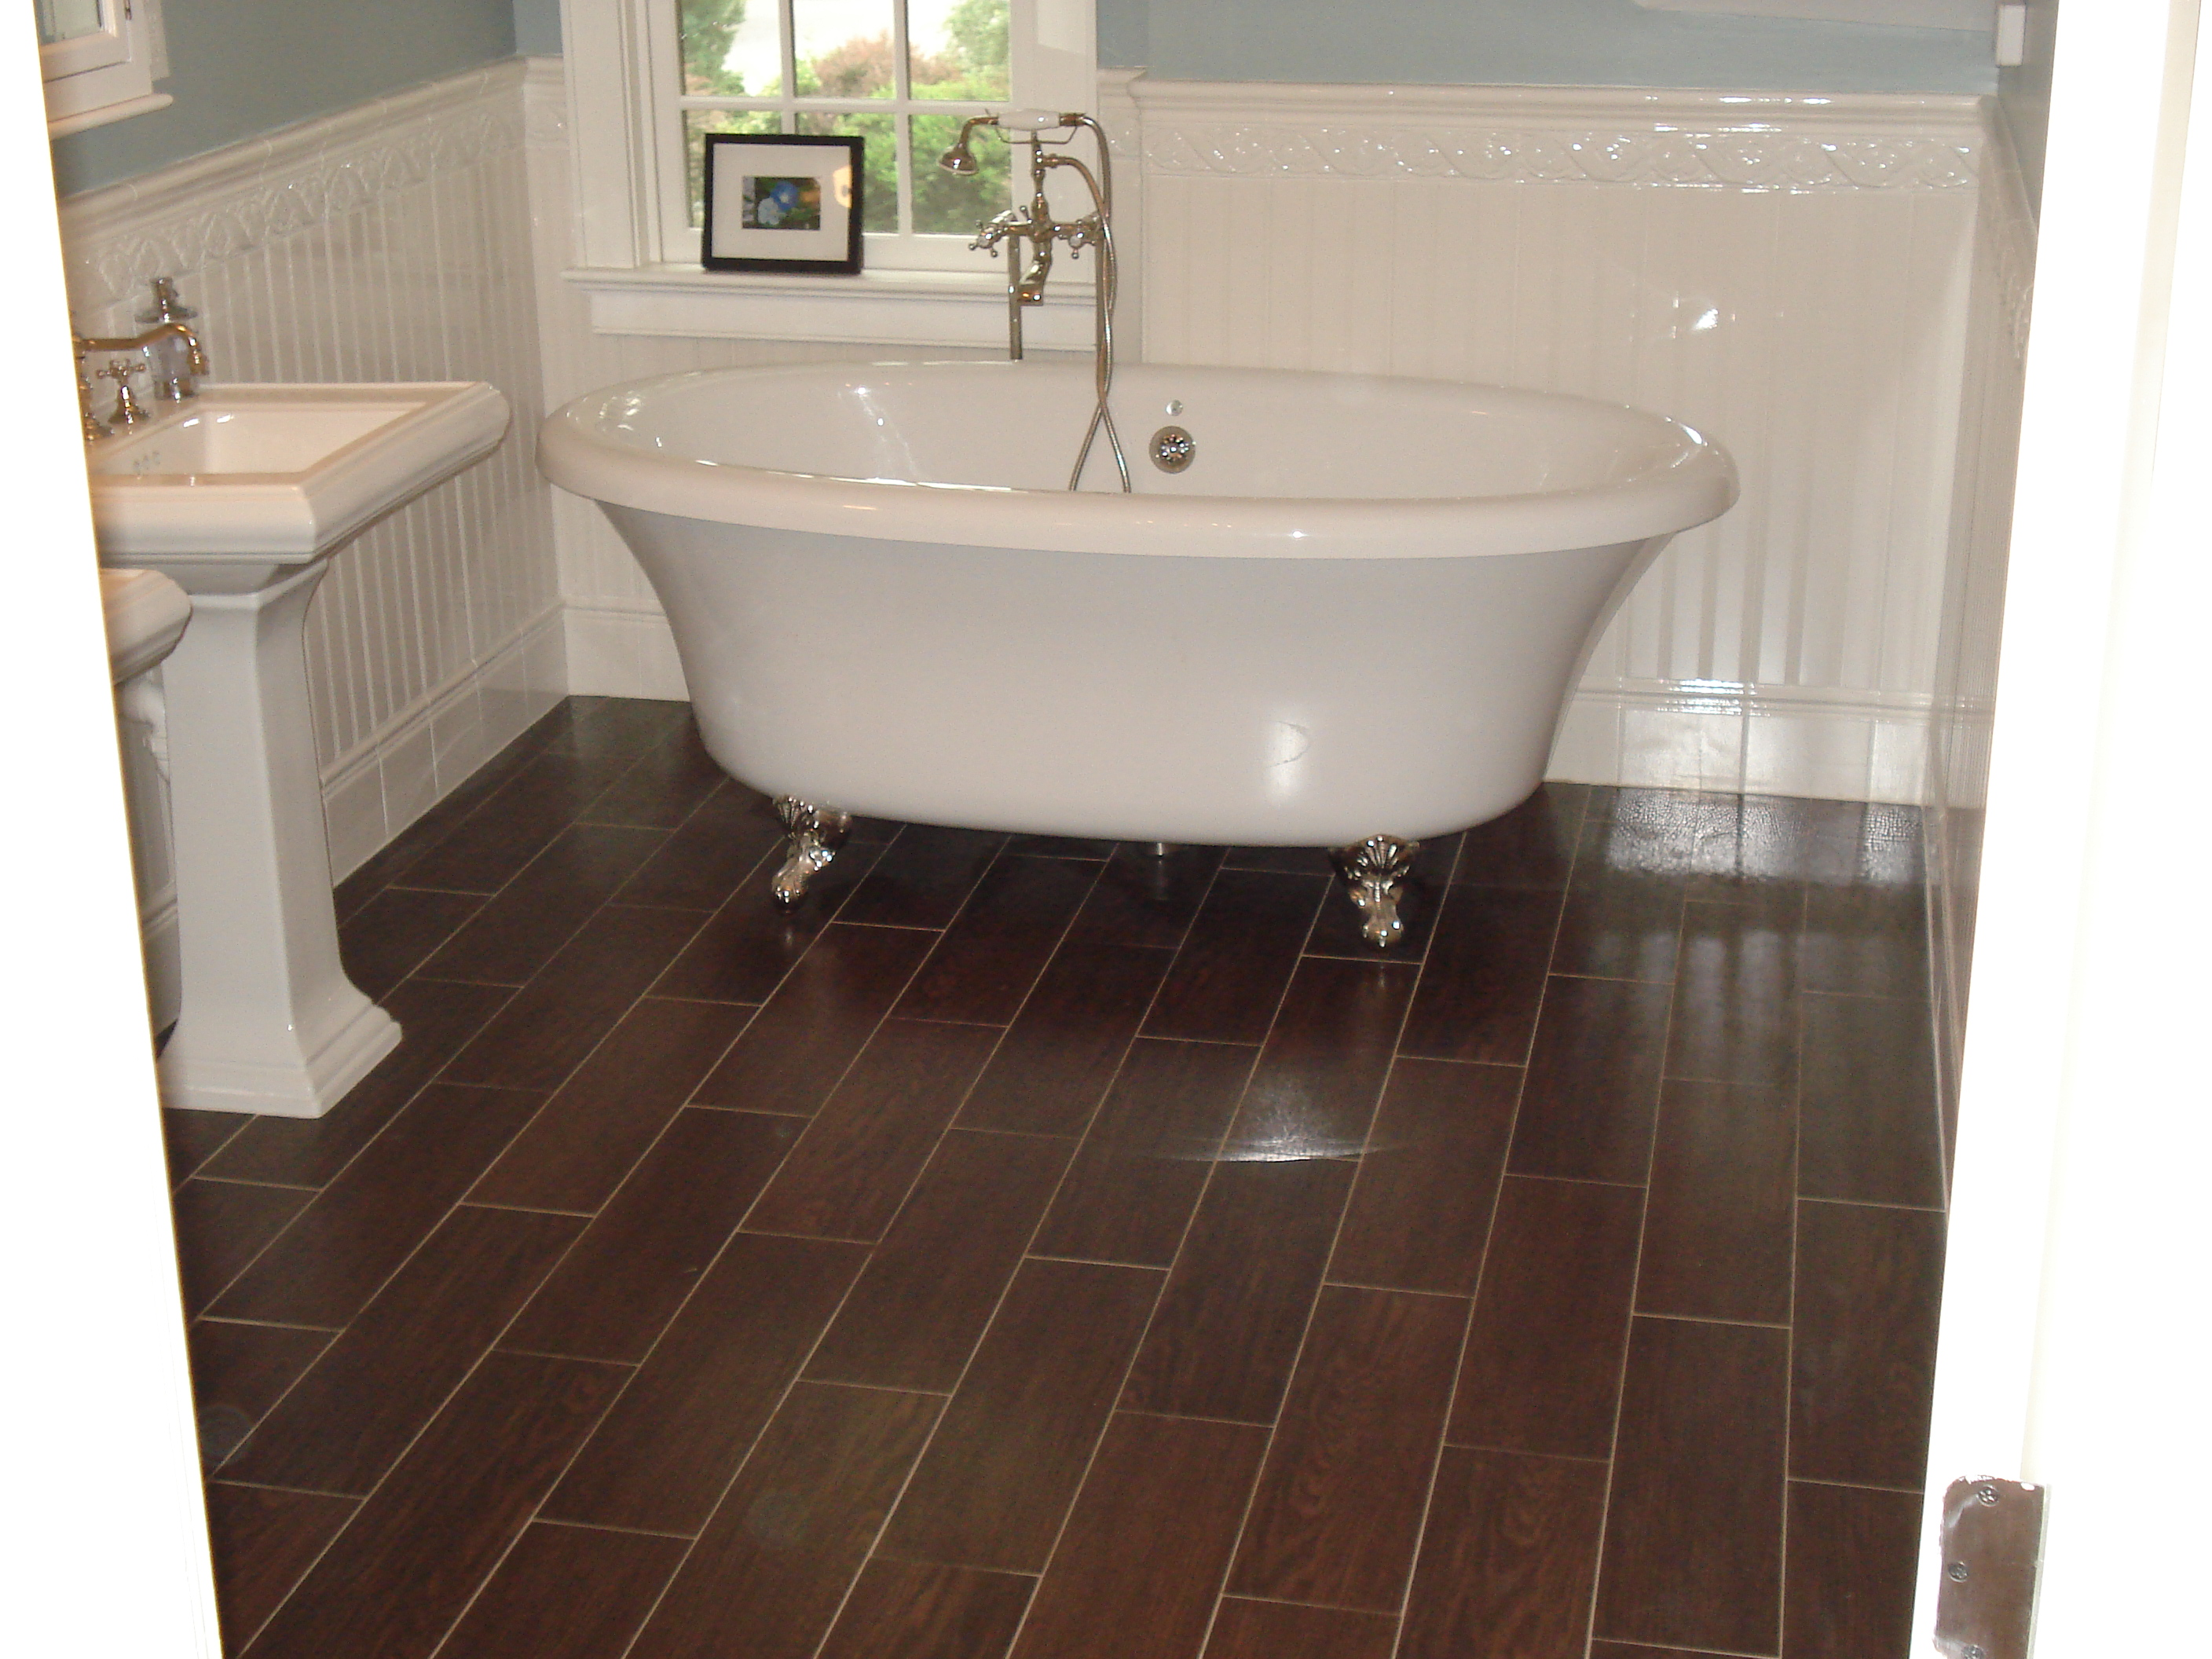 Tile look wood reviews a new reference in flooring industry glossy tiles wood floors classic style of bathtub square form sink single golden faucet dailygadgetfo Gallery